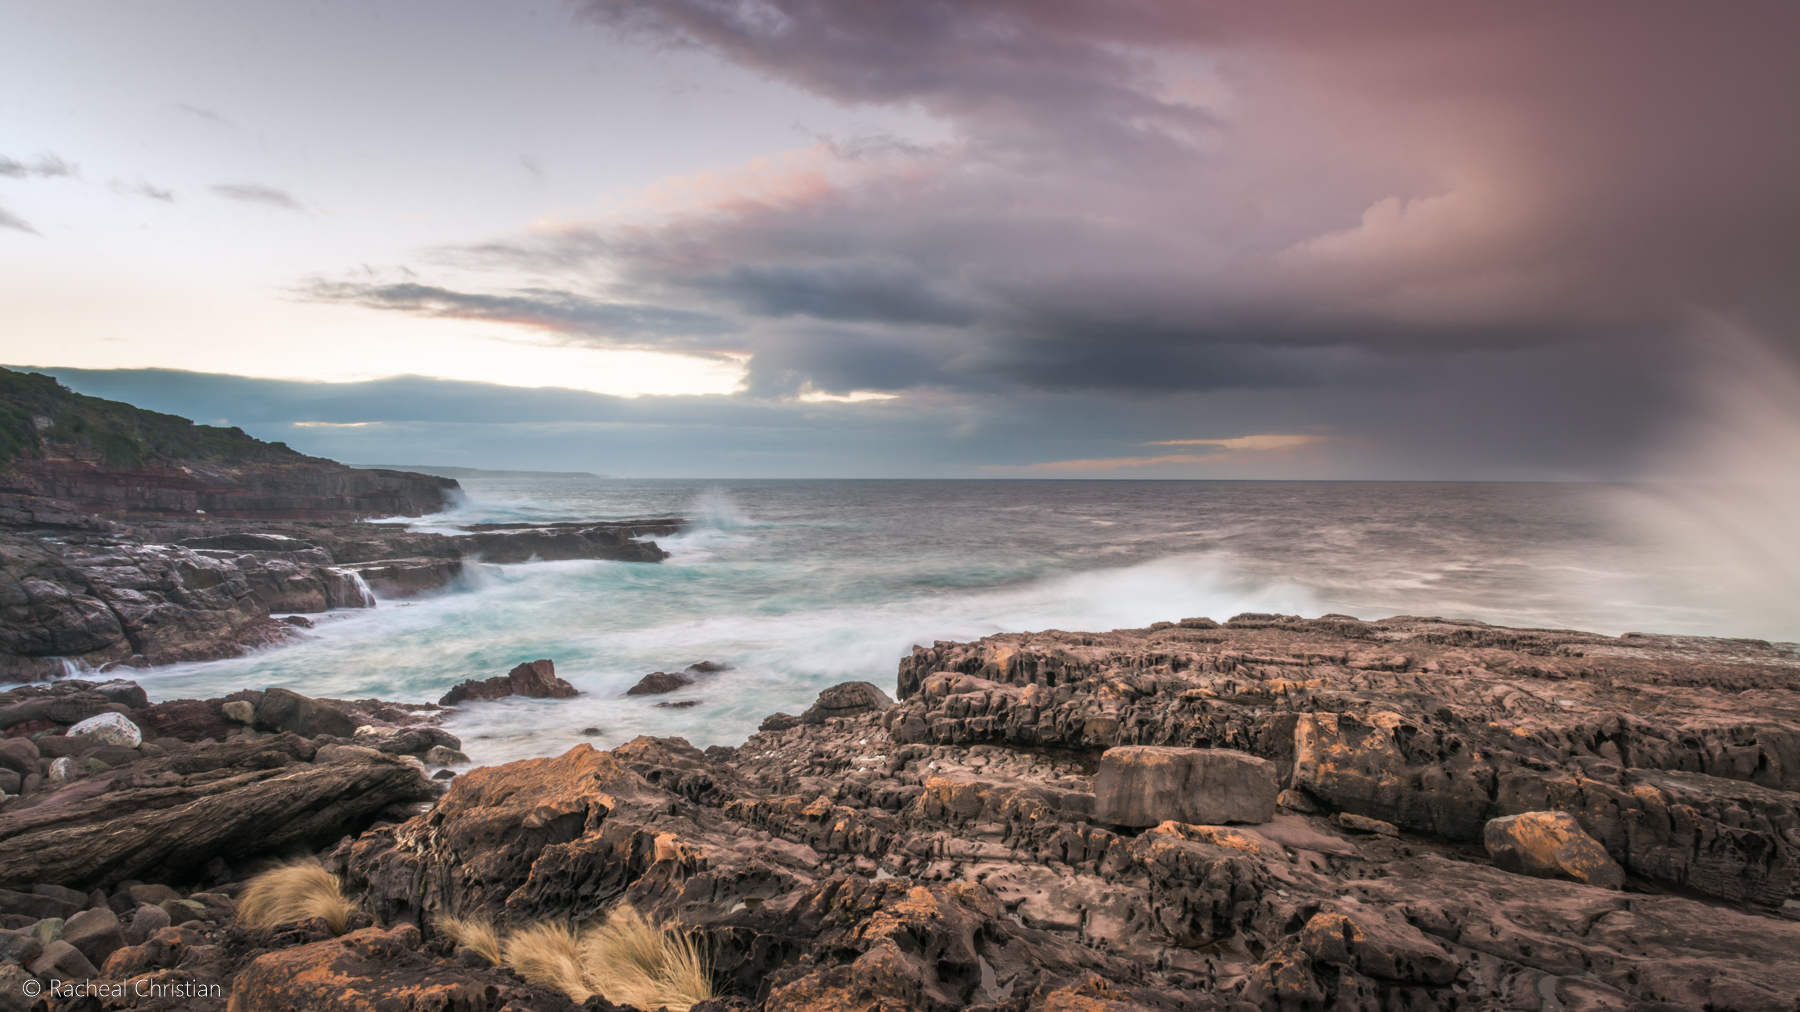 Photo Of The Week: Untamed Coast | Green Cape NSW by Racheal Christian